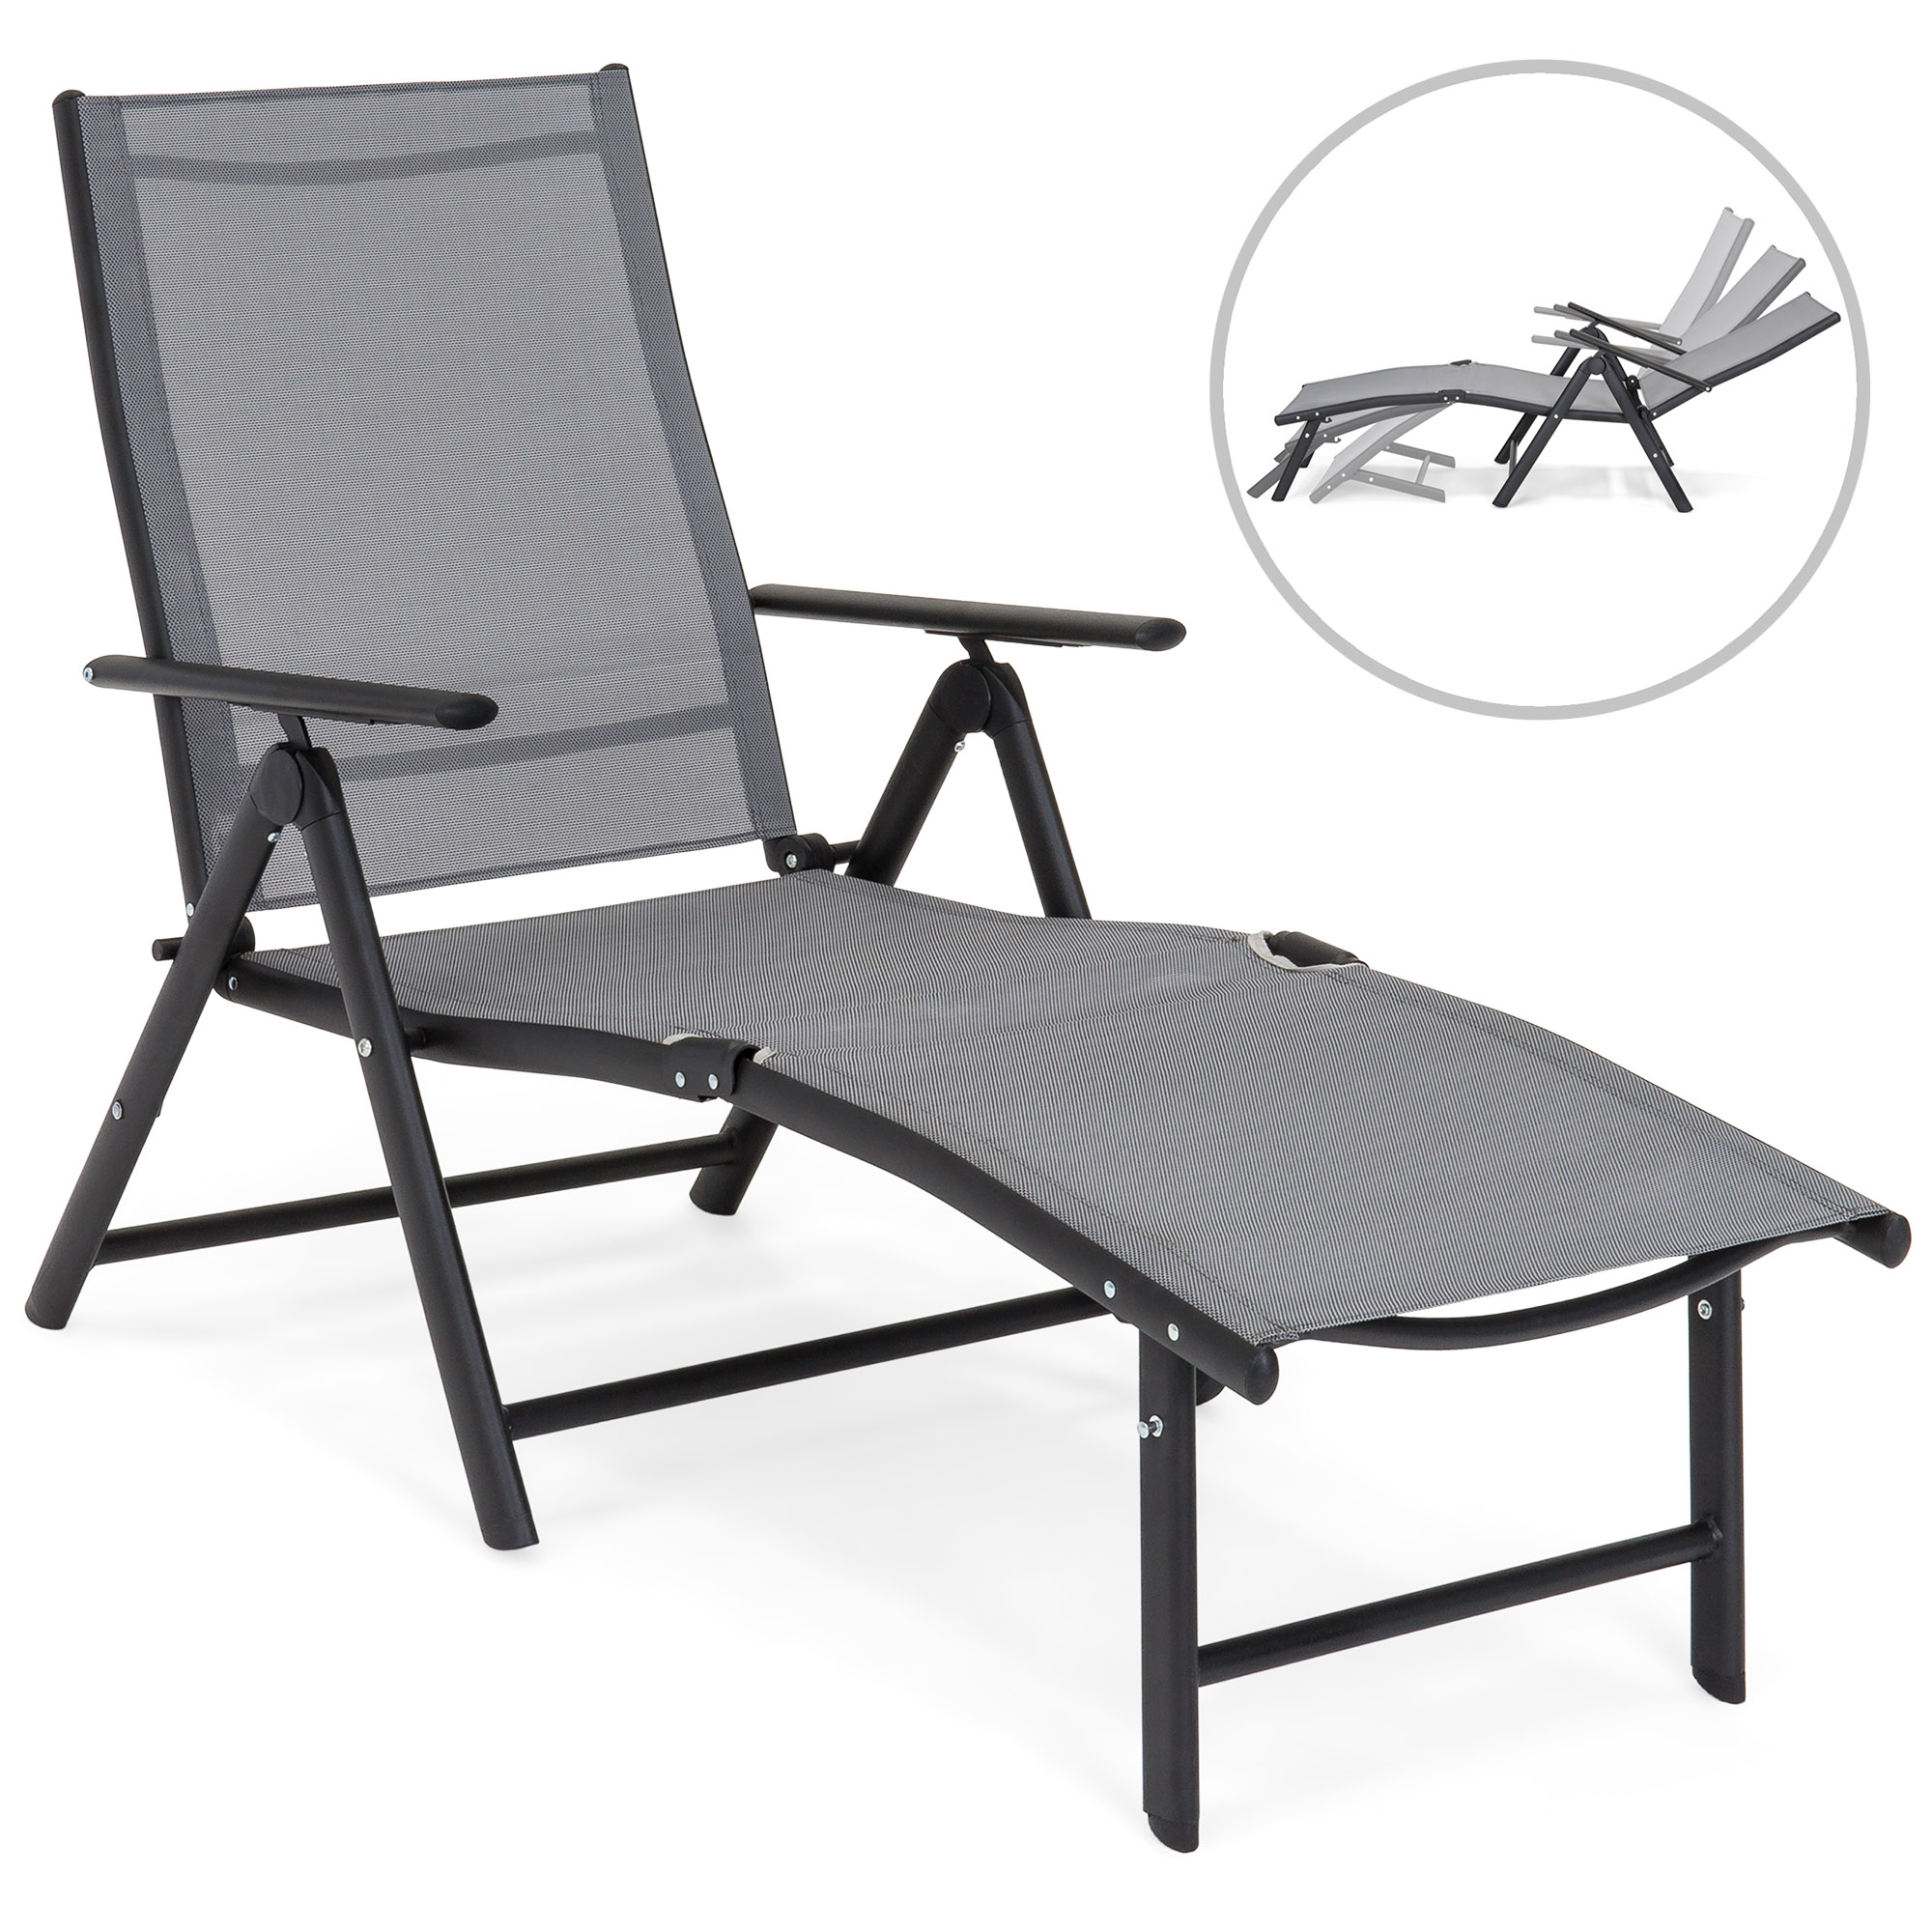 Best Choice Products Reclining Folding Chaise Lounge Chair For Outdoor, Patio, Poolside W/ Armrests, Adjustable Foot Rest – Gray For Trendy Reclining Sling Chaise Lounges (Gallery 10 of 25)